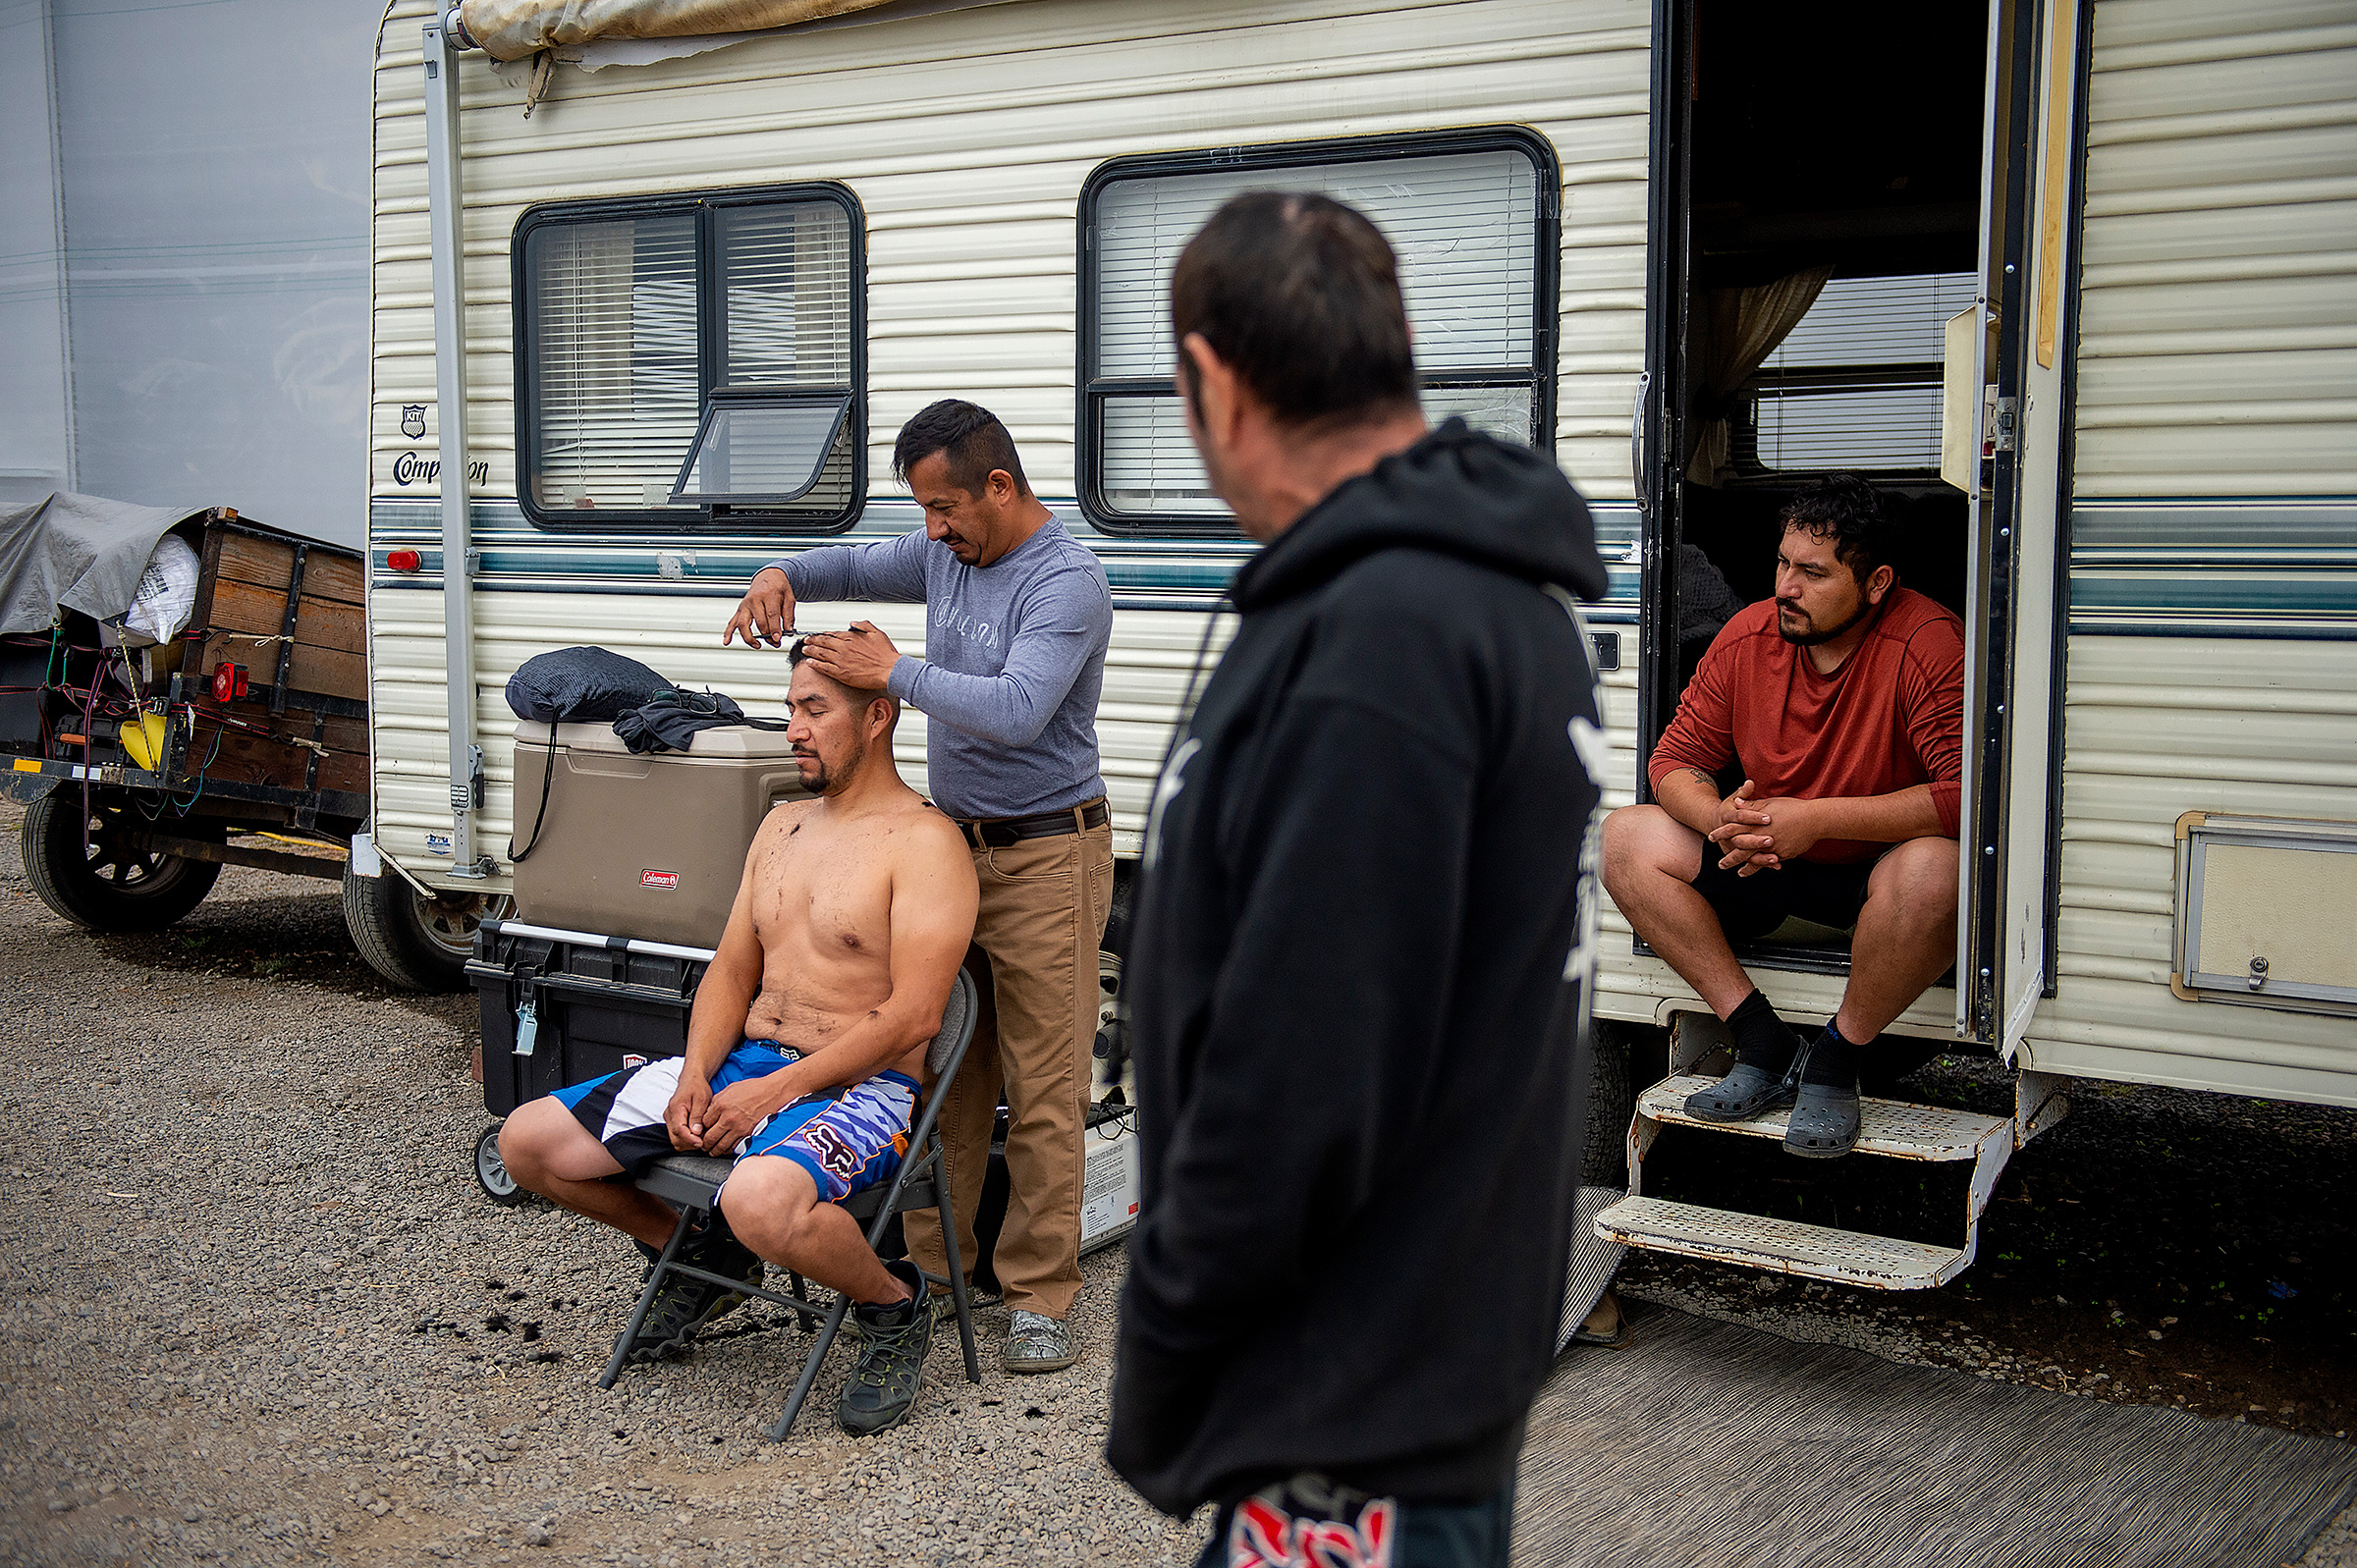 Julio Hernandez cuts the hair of his brother, Alvaro Hernandez, at a farm that opened space to people displaced by wildfires in Central Point, Ore., on Sept. 26, 2020. The Almeda Fire leveled some of the only affordable housing for the immigrants who work the fields, kitchens and construction sites of southern Oregon.